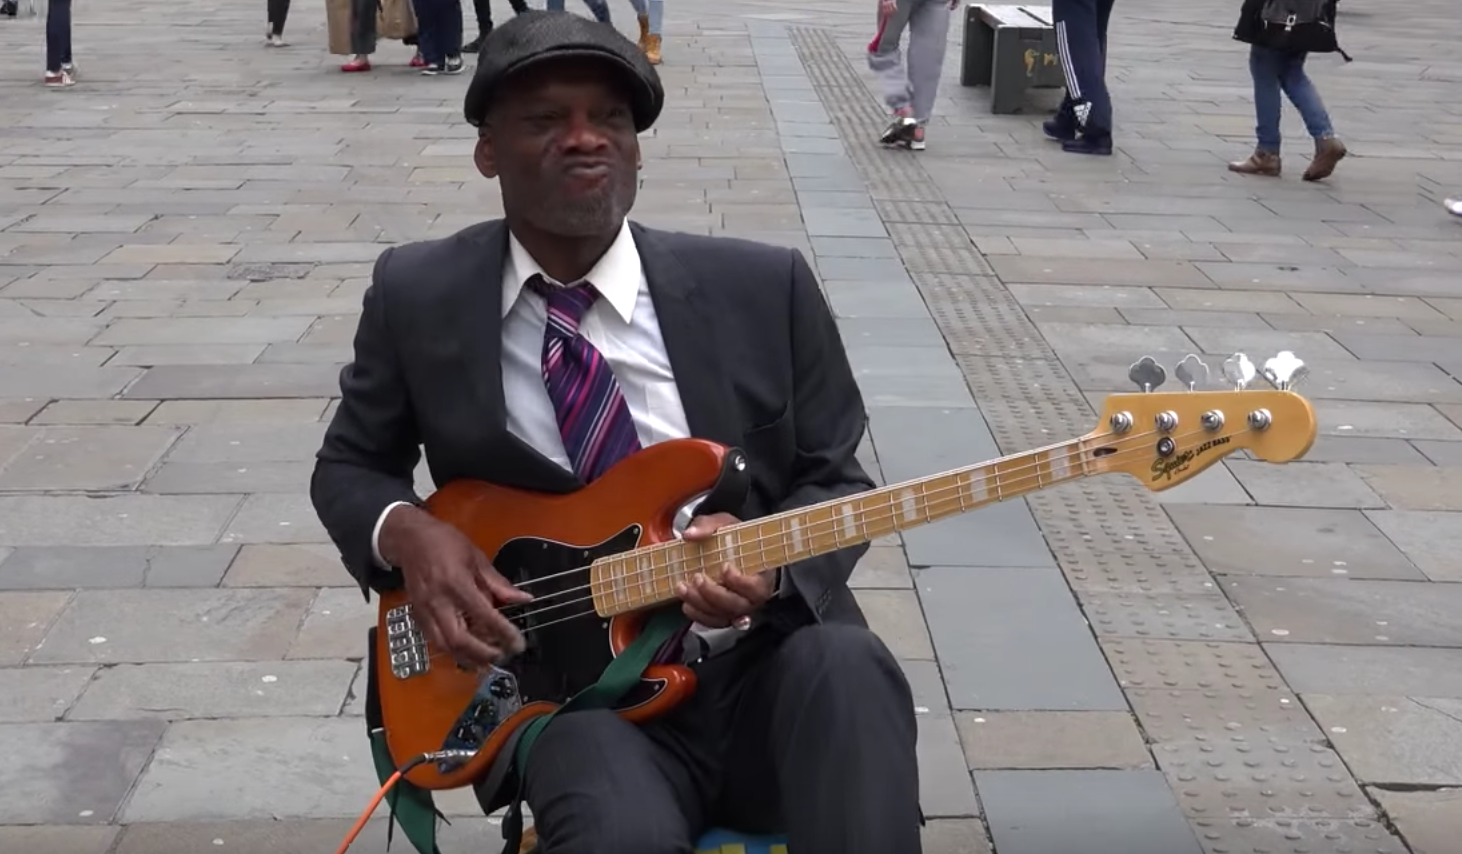 The Jimi Hendrix of the Bass: Watch a Busker Shred the Bass on the Streets of Newcastle